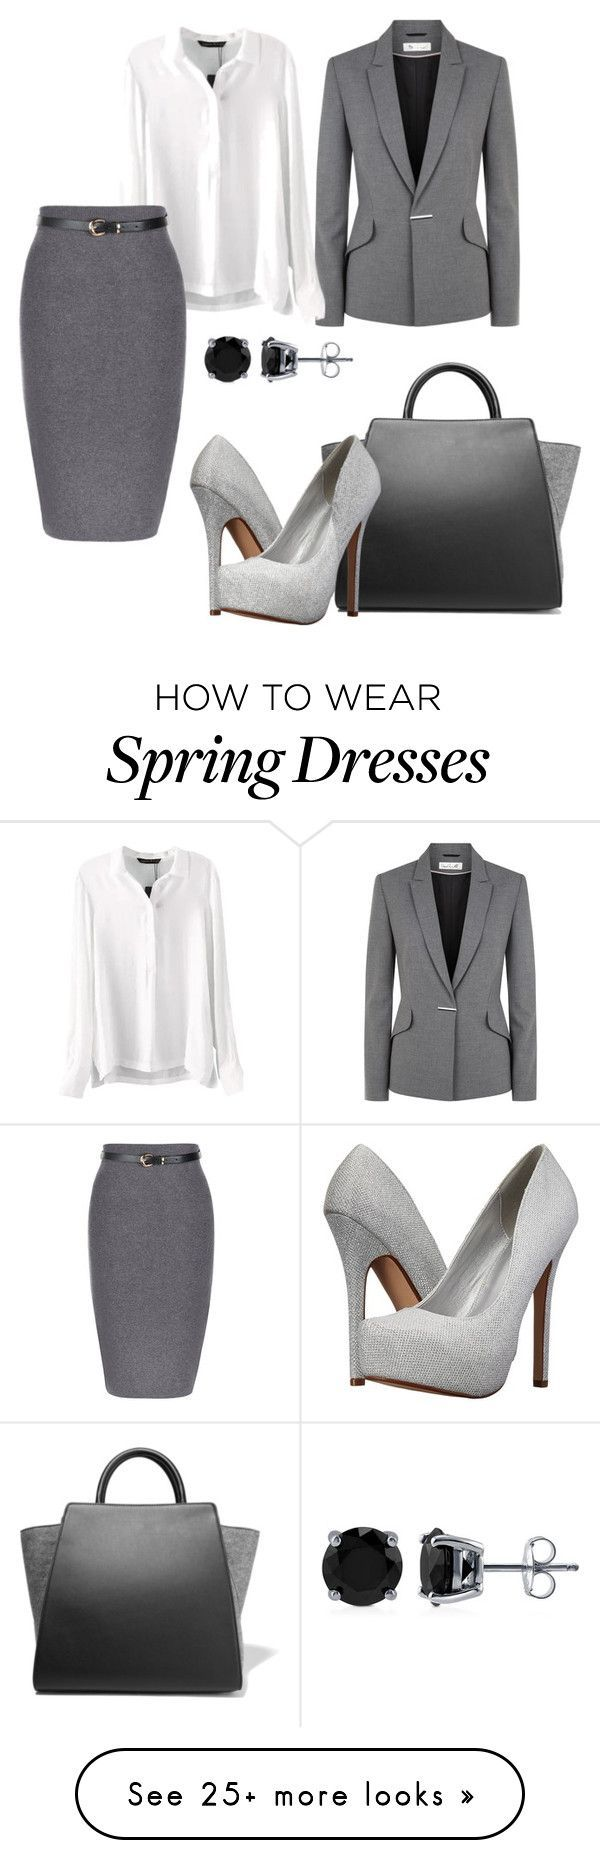 """--..m,,,´´++00"" by kirsimari on Polyvore featuring ZAC Zac Posen, Damsel in a Dress, Call it SPRING, BERRICLE, women's clothing, women's fashion, women, female, woman and misses - womens clothing dress, online shop womens clothing, online shopping womens clothing"